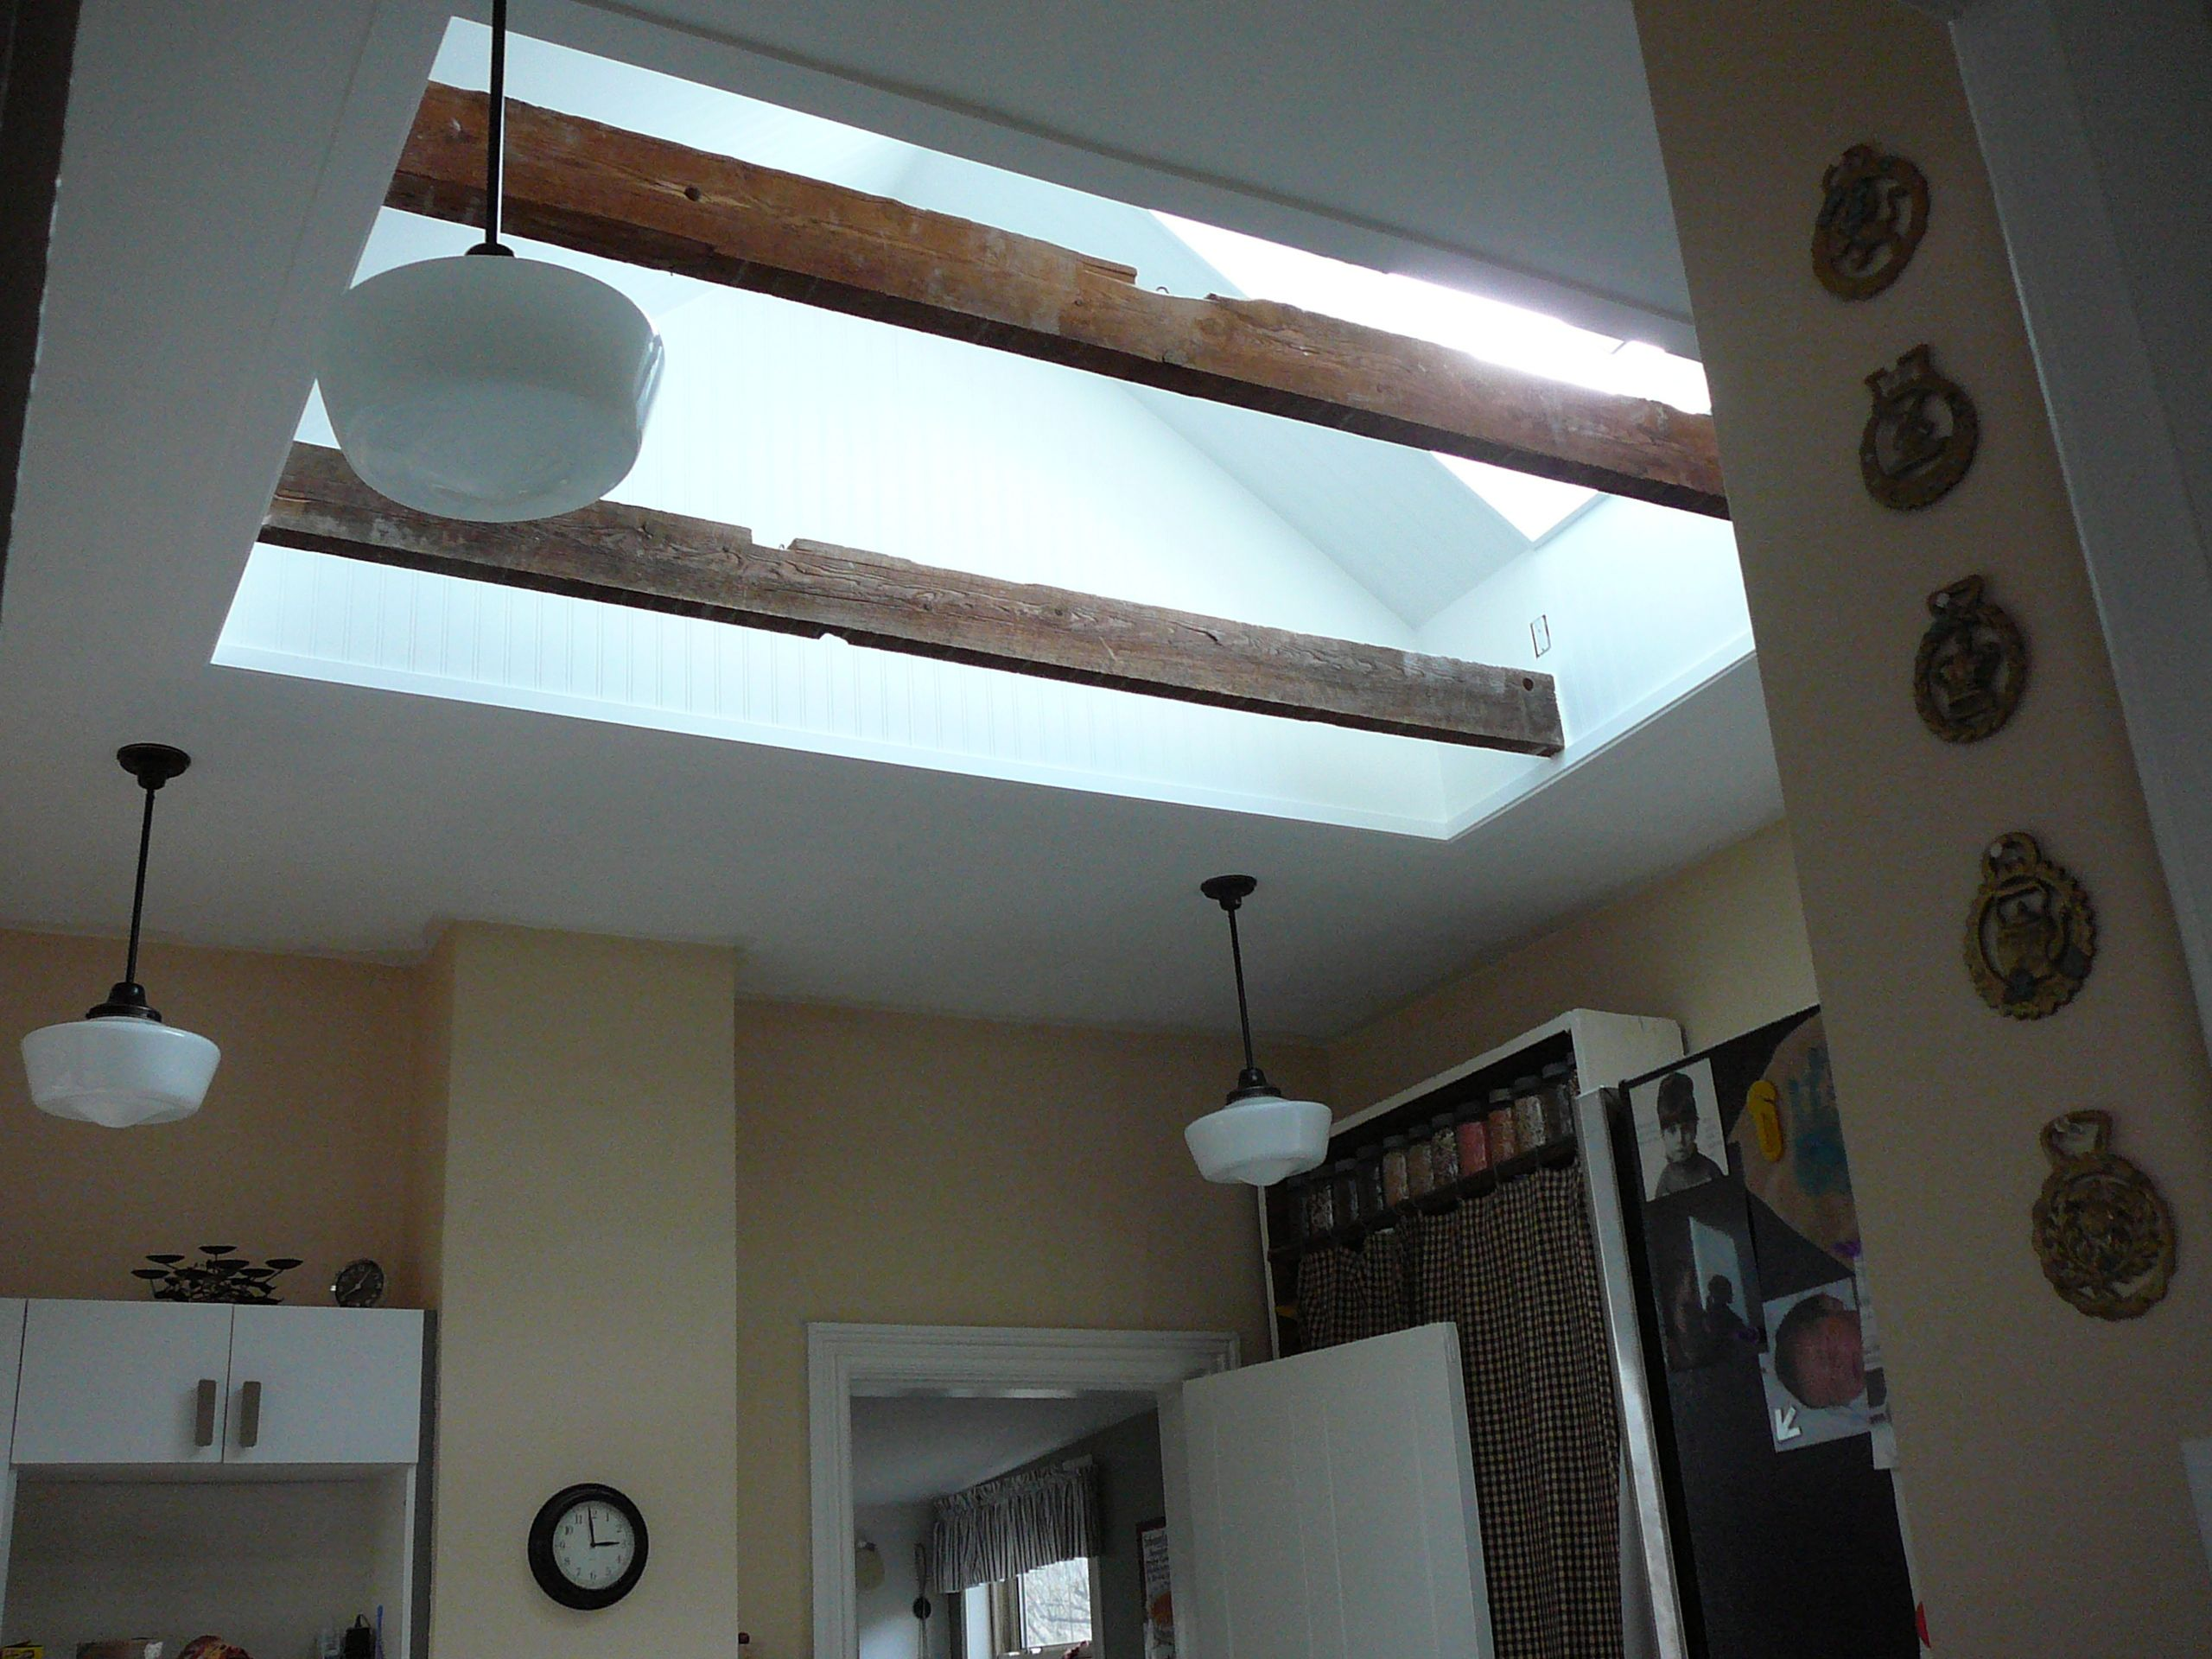 The renosense men were proud to install the very first for Solar powered blinds for skylights